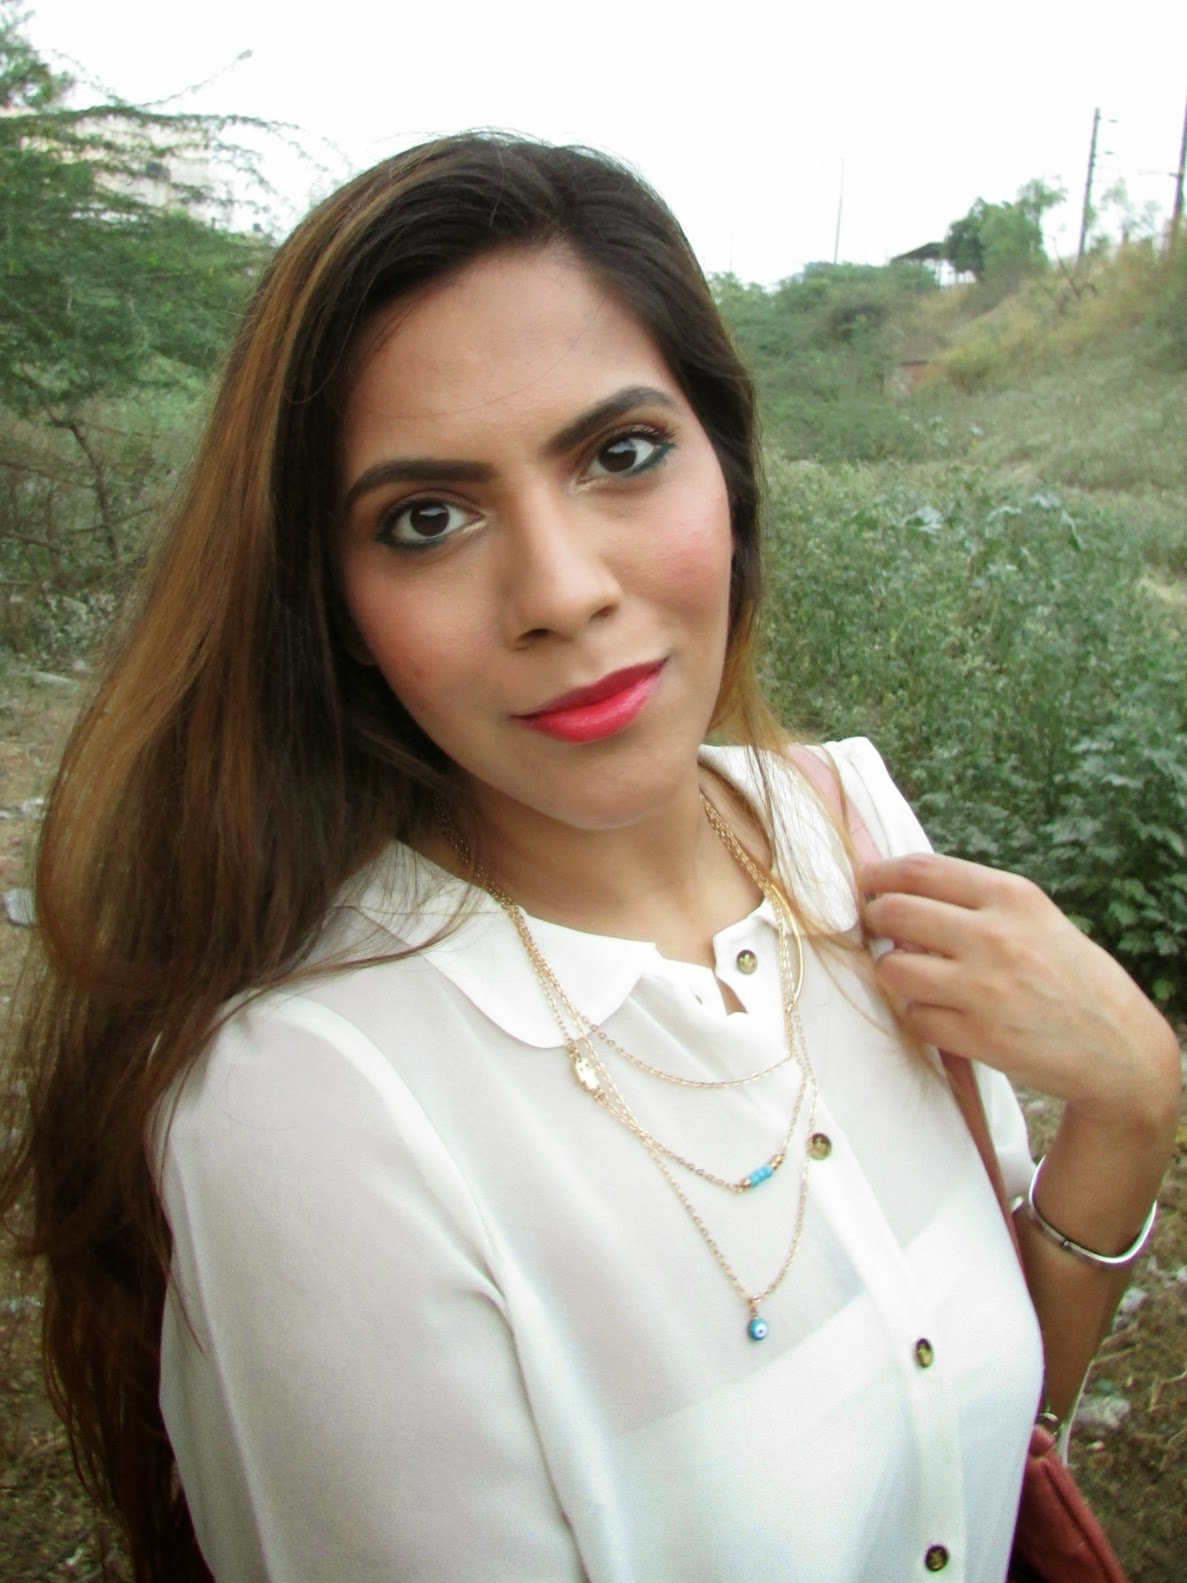 three strand necklace, evil eye necklace,hamsa necklace, summer jewelry,summer trends 2015, fashion,floral shorts, cute summer necklace,born pretty store, three strand tassel necklace,Statement necklace, necklace, statement necklaces, big necklace, heavy necklaces , gold necklace, silver necklace, silver statement necklace, gold statement necklace, studded statement necklace , studded necklace, stone studded necklace, stone necklace, stove studded statement necklace, stone statement necklace, stone studded gold statement necklace, stone studded silver statement necklace, black stone necklace, black stone studded statement necklace, black stone necklace, black stone statement necklace, neon statement necklace, neon stone statement necklace, black and silver necklace, black and gold necklace, blank and silver statement necklace, black and gold statement necklace, silver jewellery, gold jewellery, stove jewellery, stone studded jewellery, imitation jewellery, artificial jewellery, junk jewellery, cheap jewellery , bornprettystore Statement necklace, bornprettystore  necklace, bornprettystore statement necklaces,bornprettystore big necklace, bornprettystore heavy necklaces , bornprettystore gold necklace, bornprettystoresilver necklace, bornprettystore silver statement necklace,bornprettystore gold statement necklace, bornprettystore studded statement necklace ,bornprettystore studded necklace, bornprettystore stone studded necklace,bornprettystore stone necklace, bornprettystore stove studded statement necklace,bornprettystore stone statement necklace, bornprettystore stone studded gold statement necklace, bornprettystore stone studded silver statement necklace, bornprettystore black stone necklace, bornprettystore black stone studded statement necklace, bornprettystore black stone necklace,bornprettystore black stone statement necklace,bornprettystore neon statement necklace, bornprettystore neon stone statement necklace, bornprettystore black and silver necklace,born